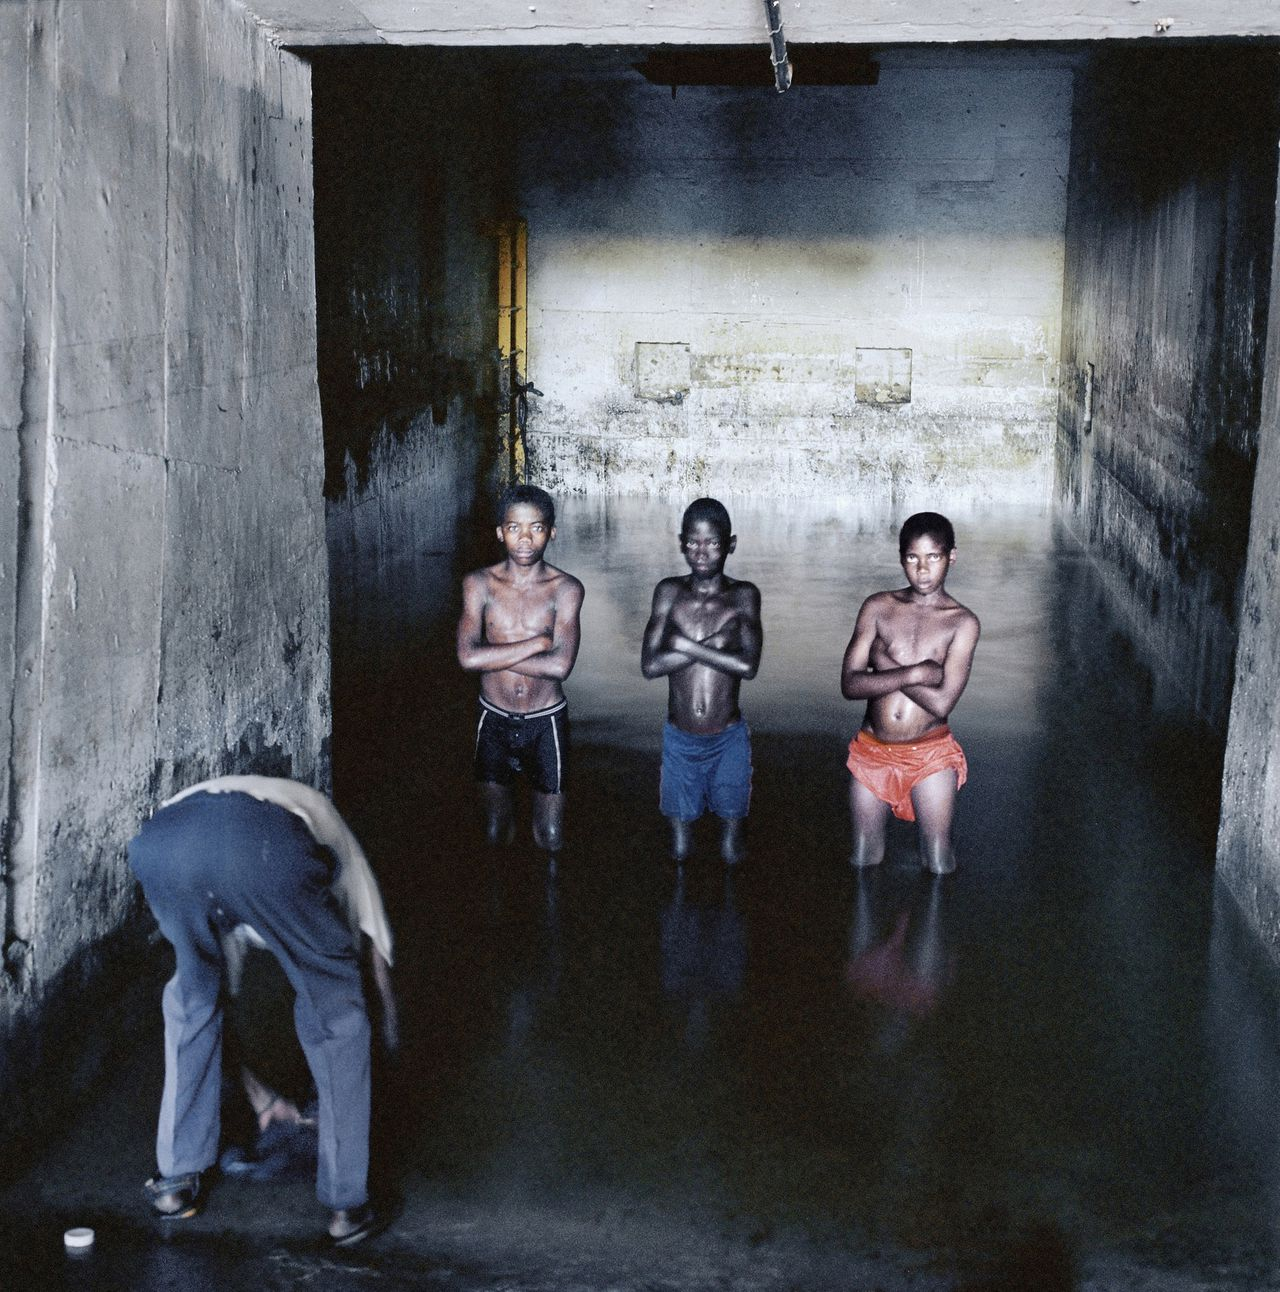 Fernando Augusto Luta washes his clothes while Augusto Mokinda (13), Ze Jano (12) an Ze Ndala (10) pose for a photograph in the water in which they swim in a mineshaft of the Pomfret Blue Asbestos Mine, Pomfret, North-West Province, 25 December 2002.